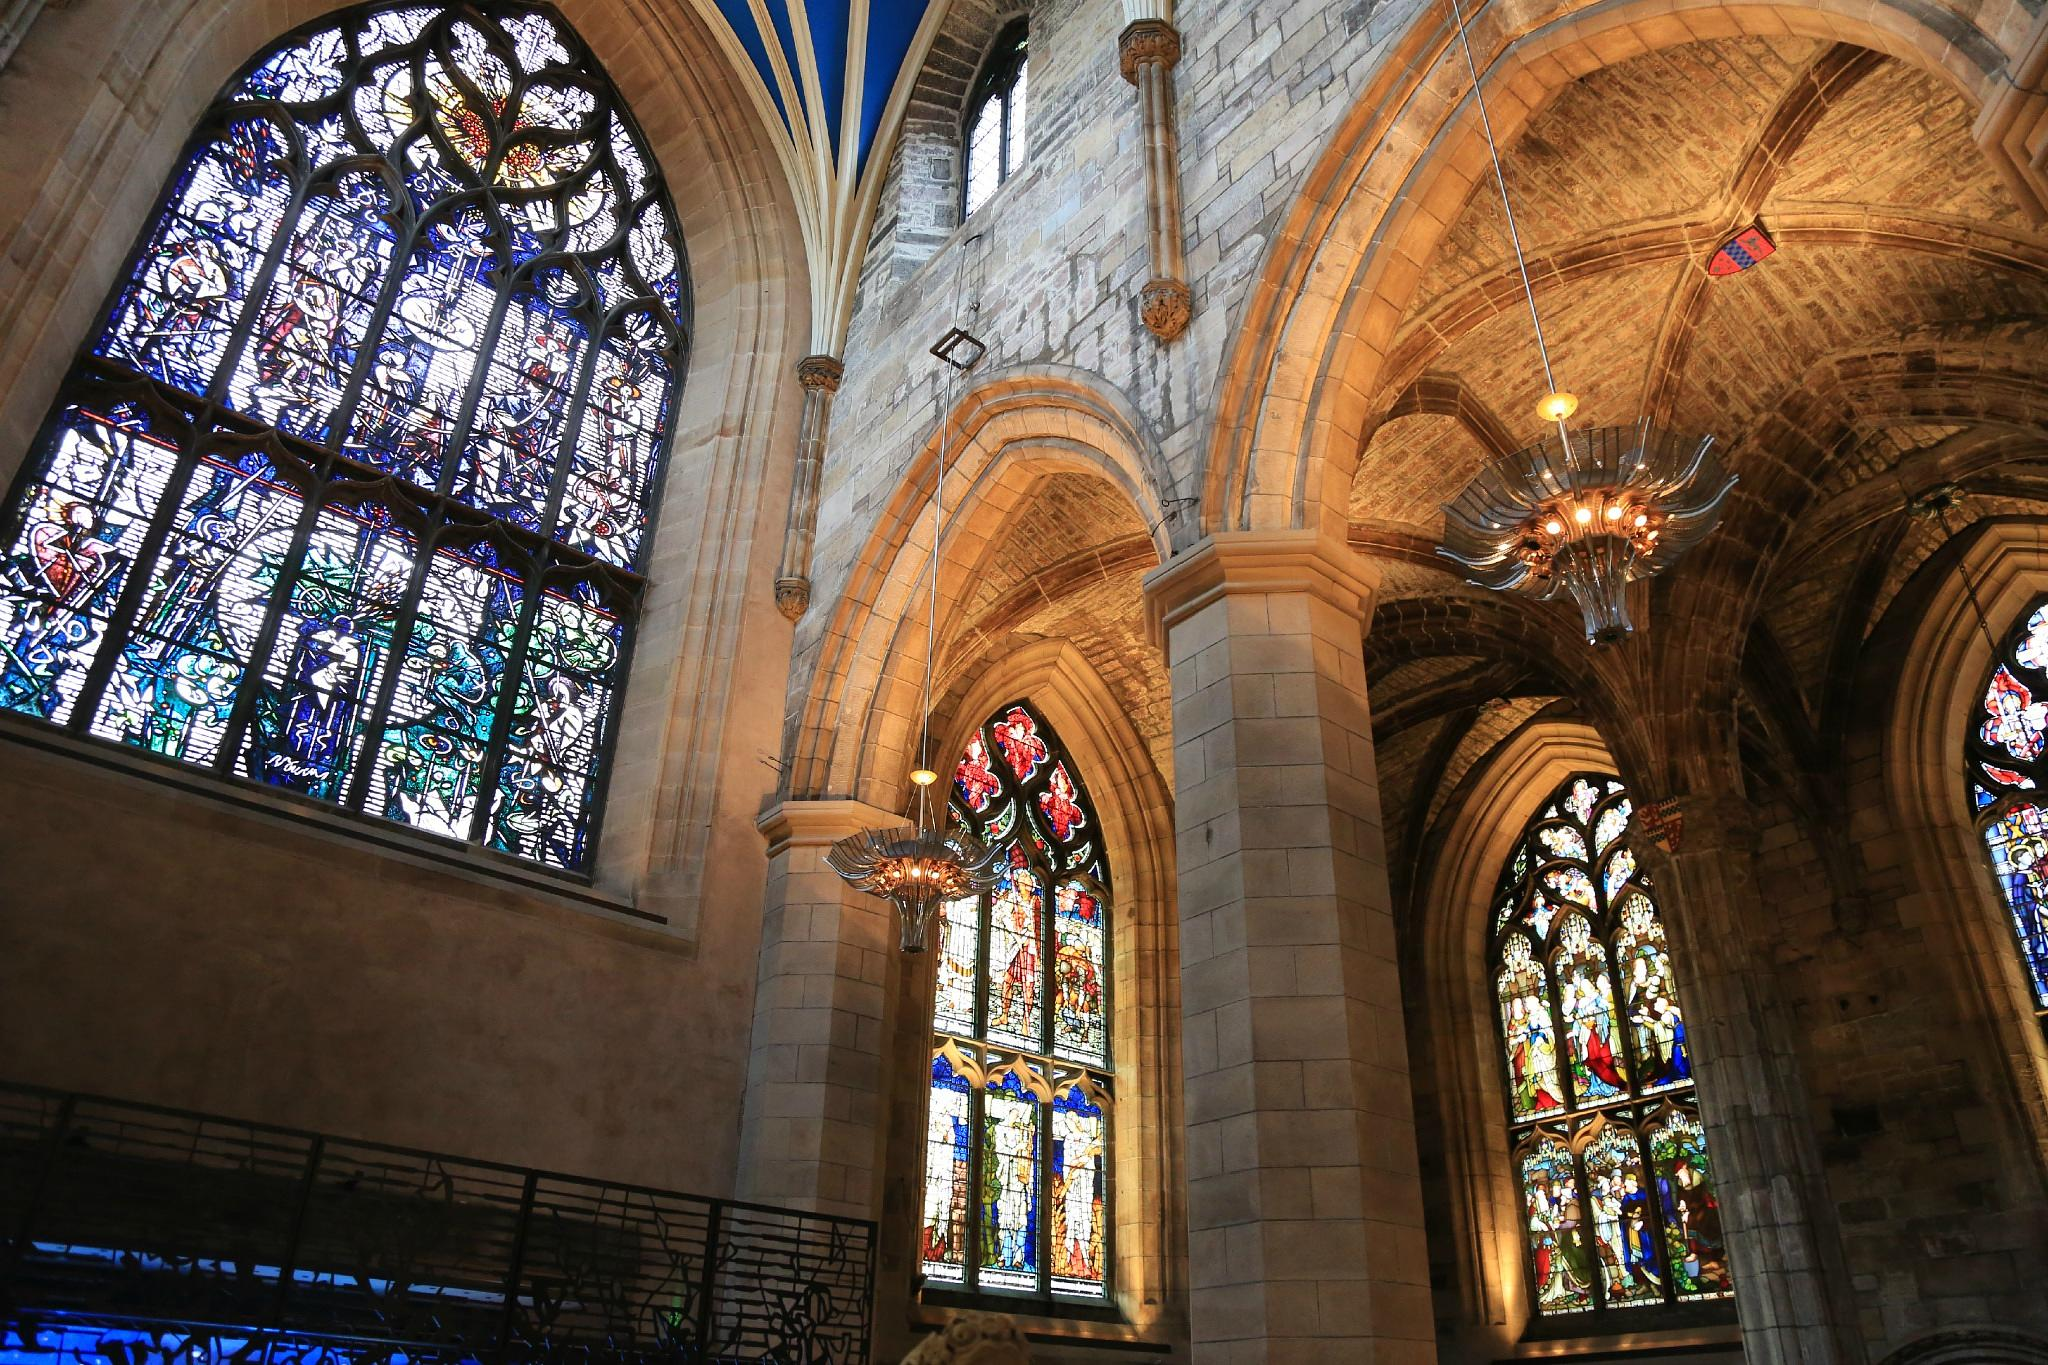 Stained glass windows in St Giles' Cathedral, Edinburgh by Cora